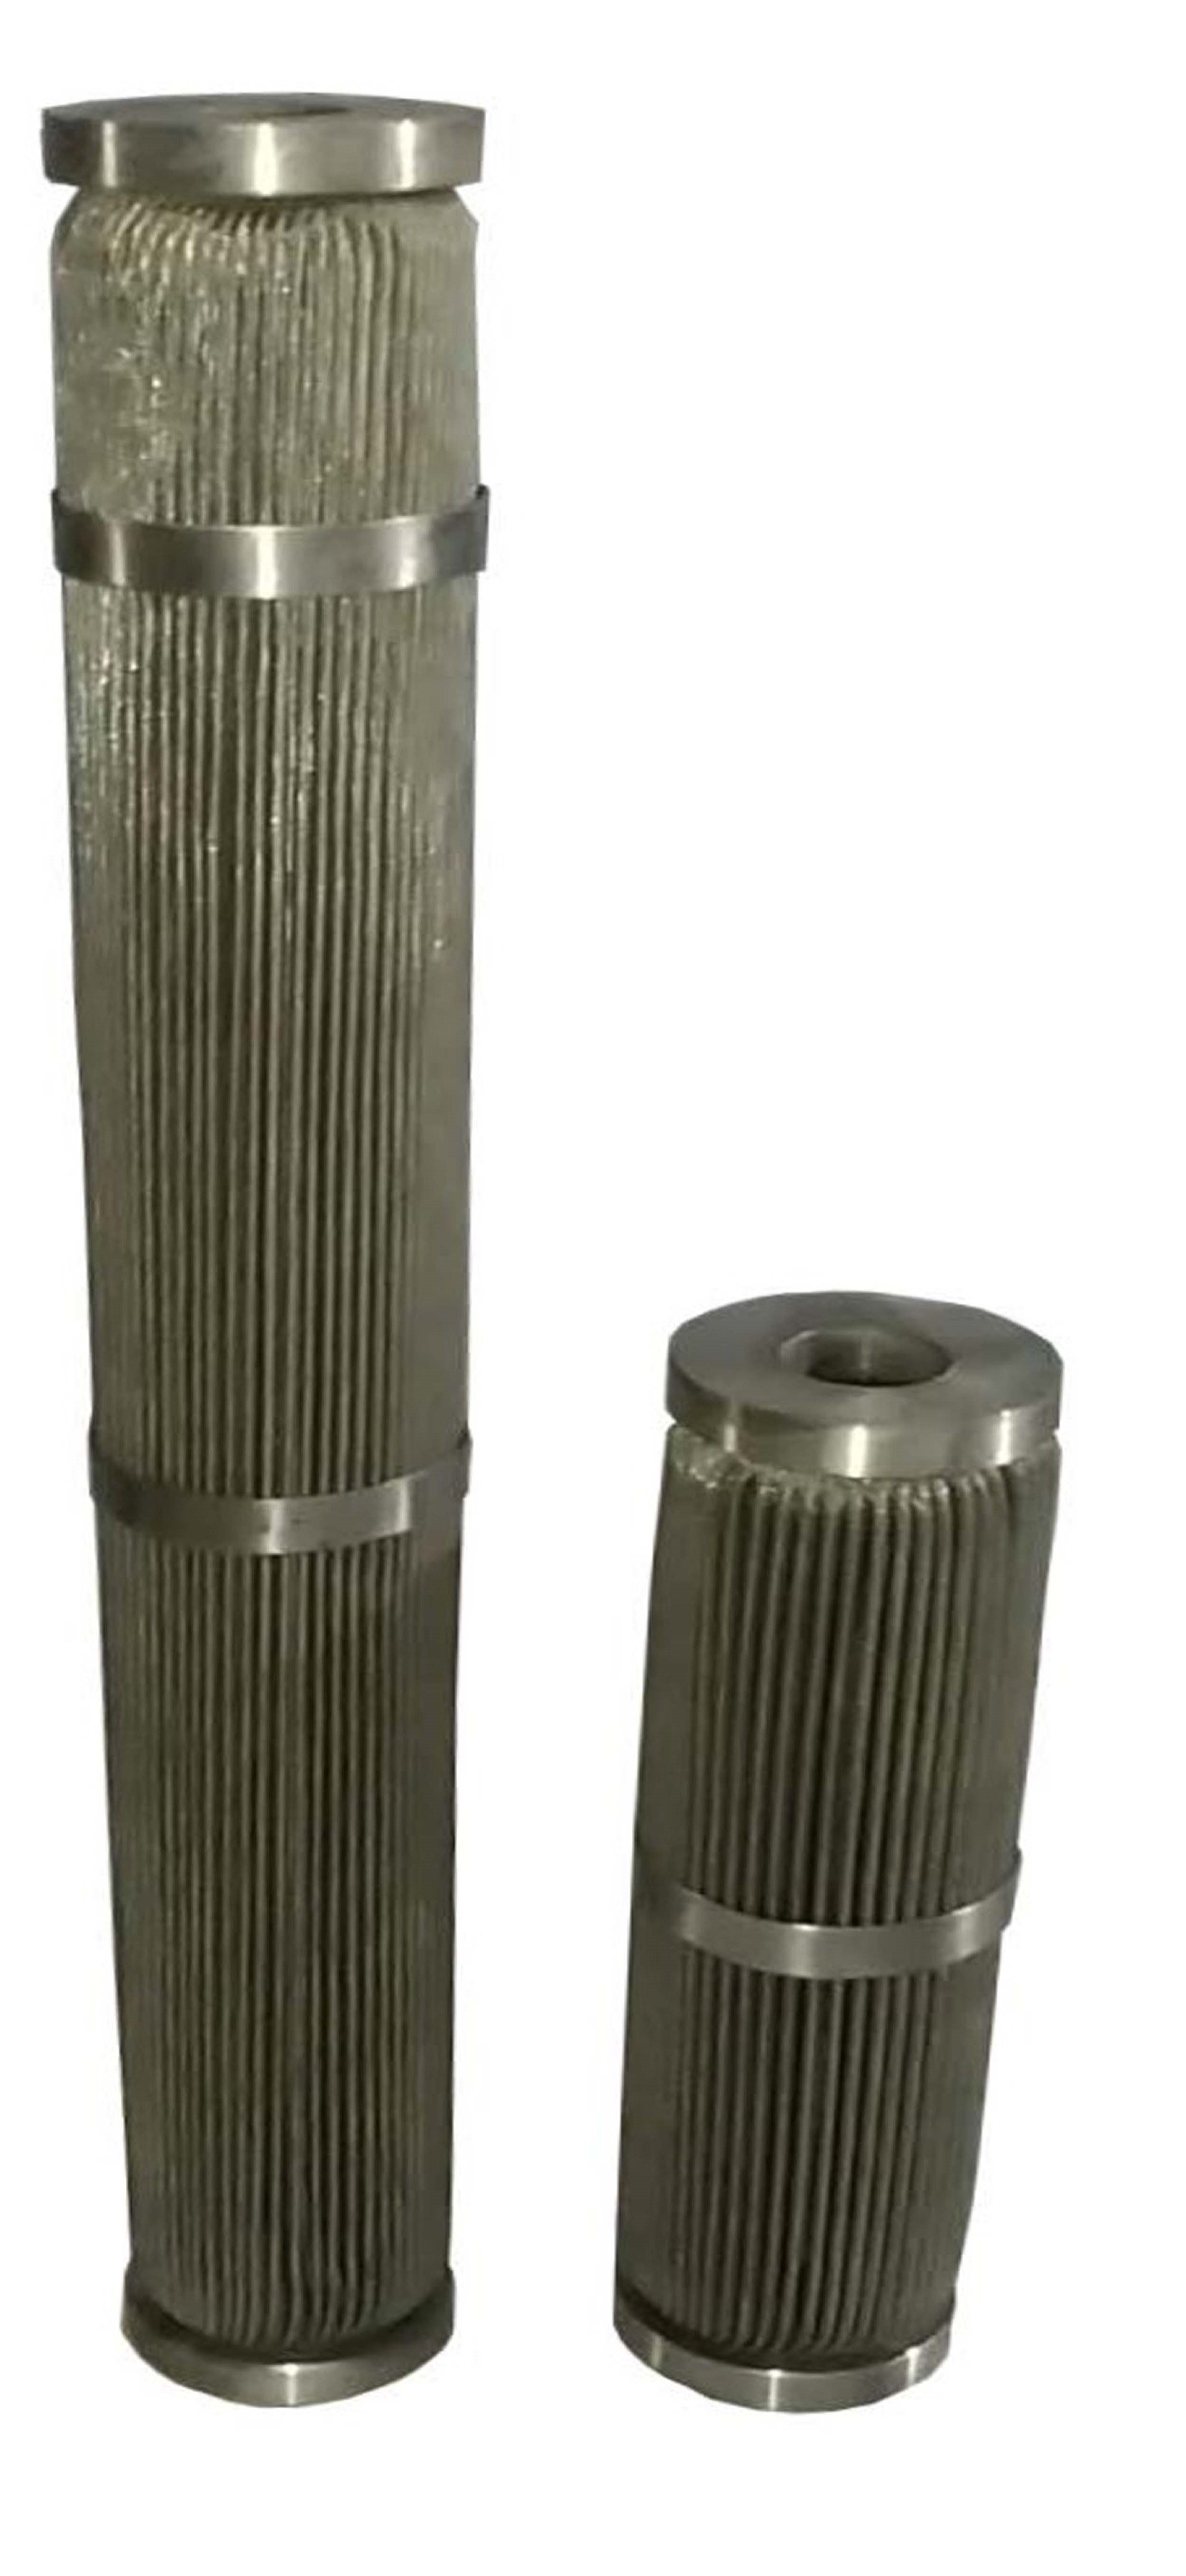 SS wiremesh Pleated Filter Cartridge